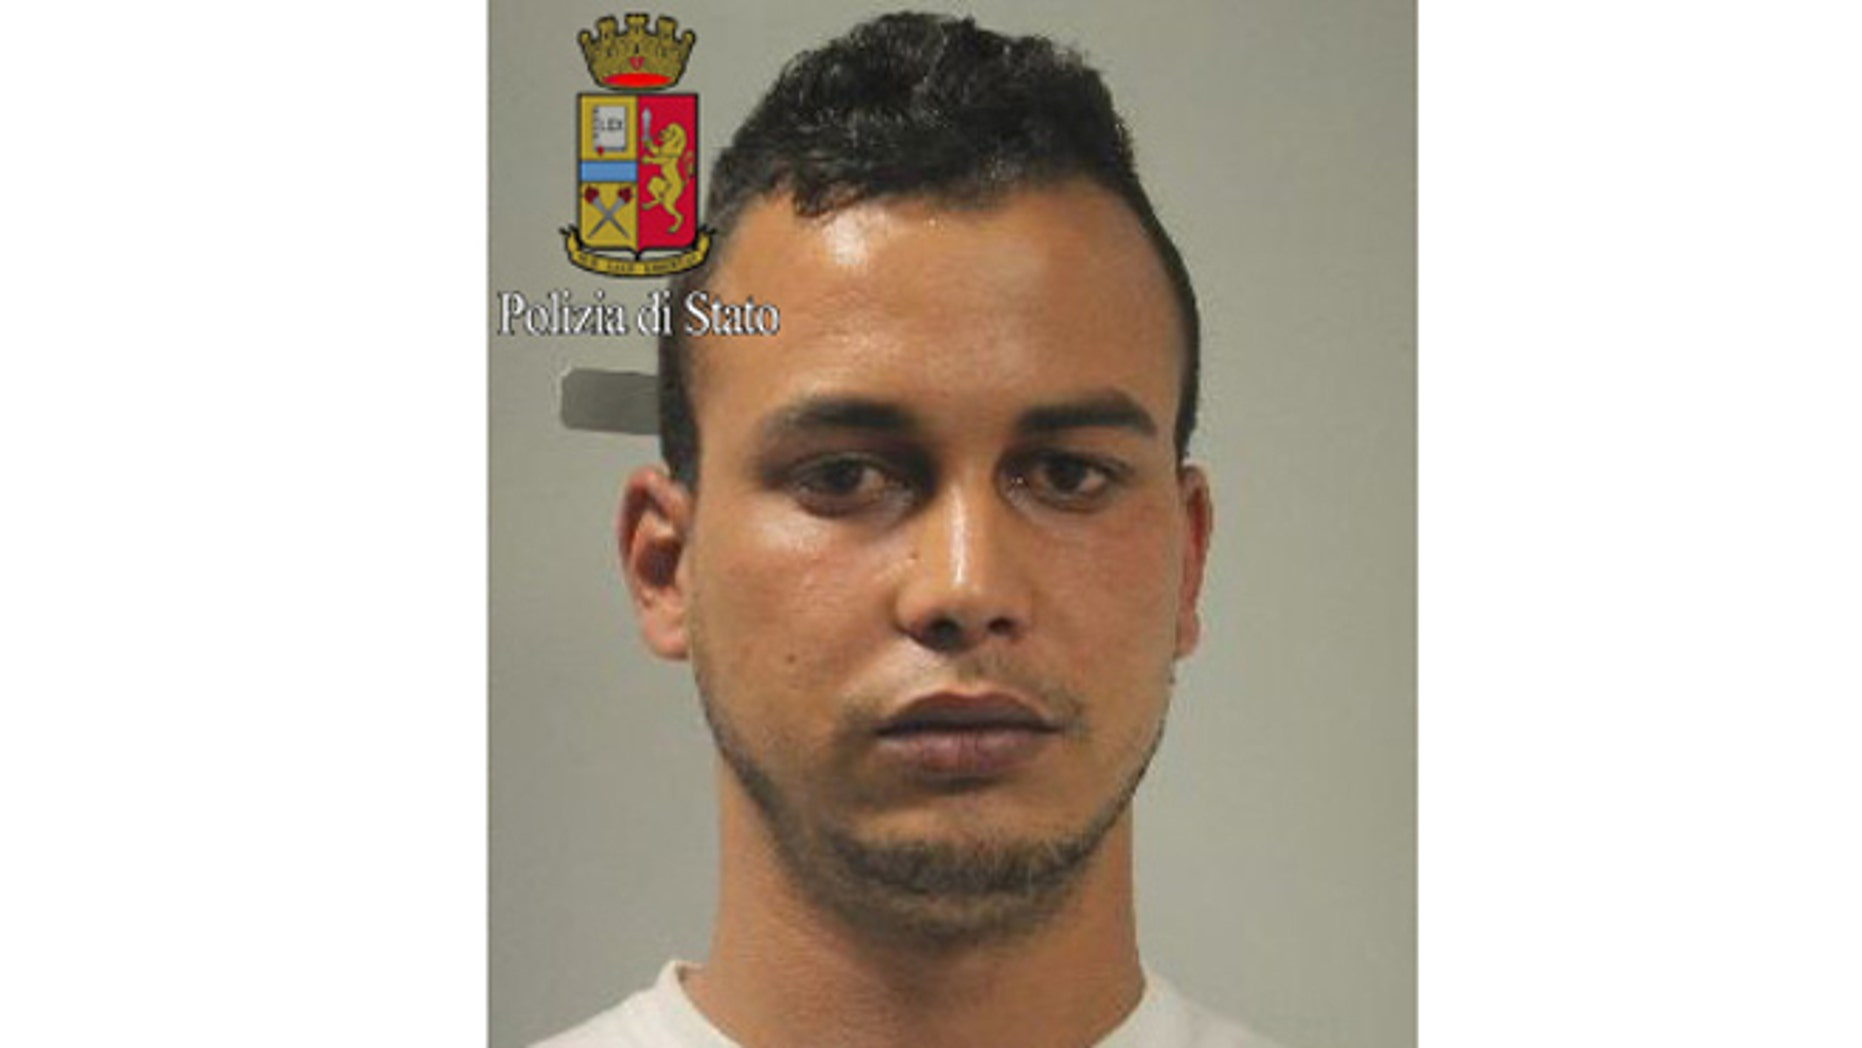 This photo released by Italian Police on May 20, 2015, shows Touil Abdelmajid, who was arrested Tuesday evening May 19 at the home of his mother in Gaggiano, near Milan.